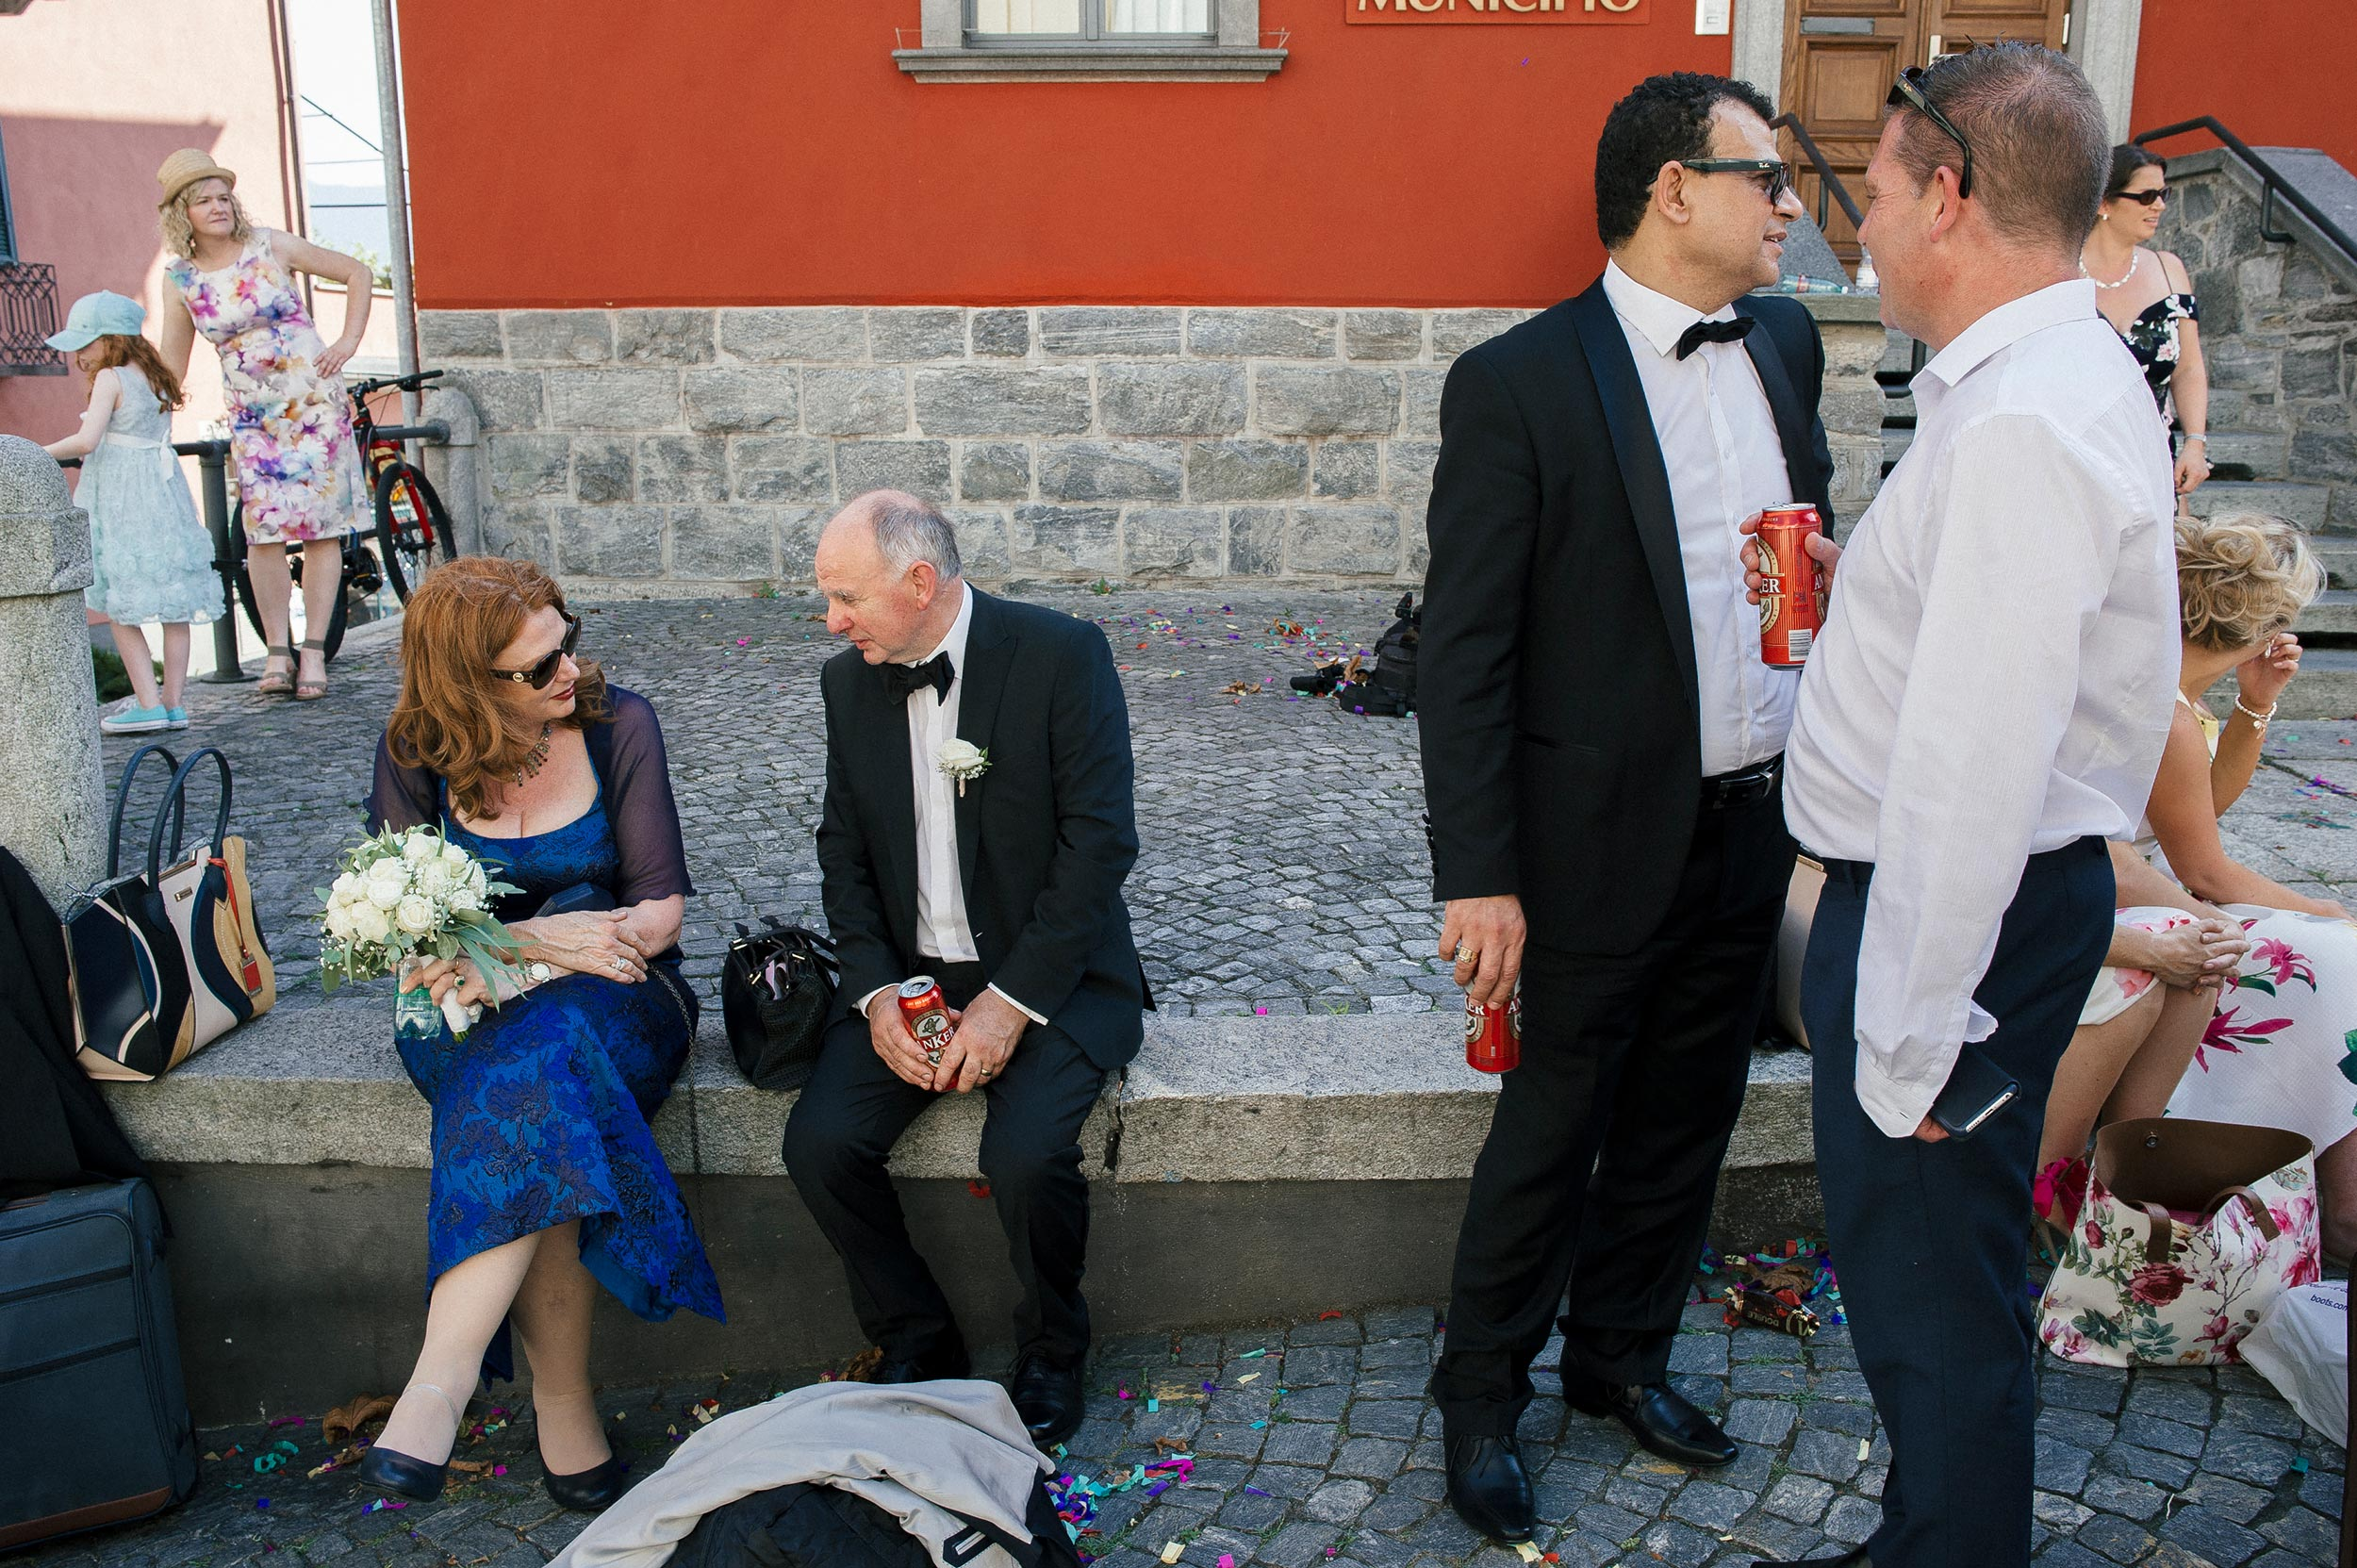 relaxed-moment-drinking-beer-after-wedding-ceremony.jpg